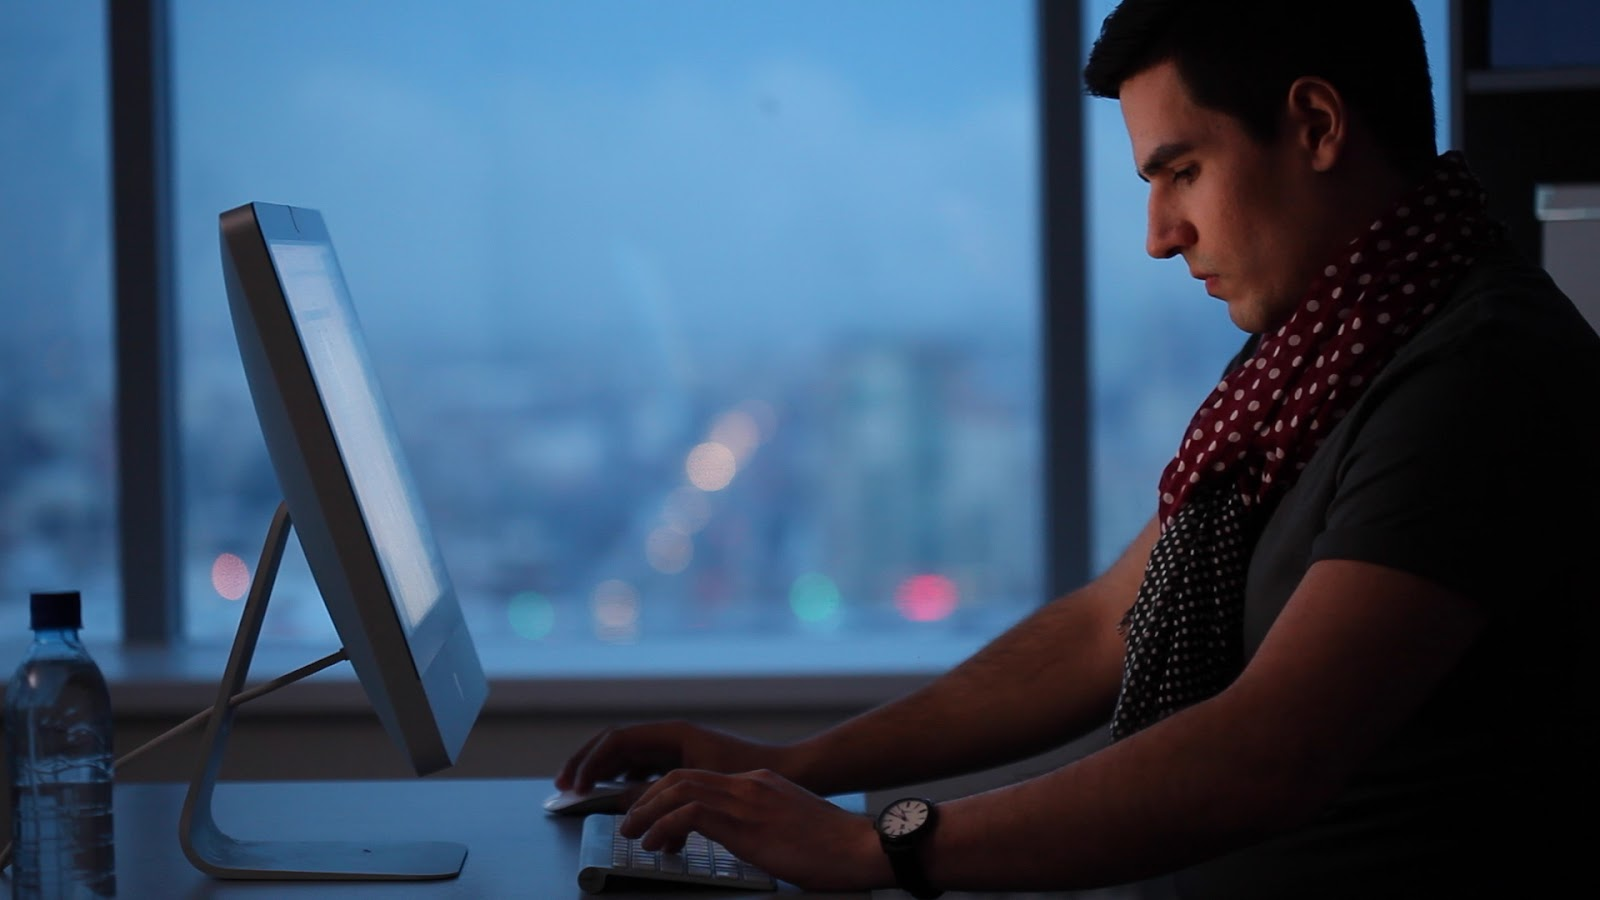 Man with multiple scarves working on laptop